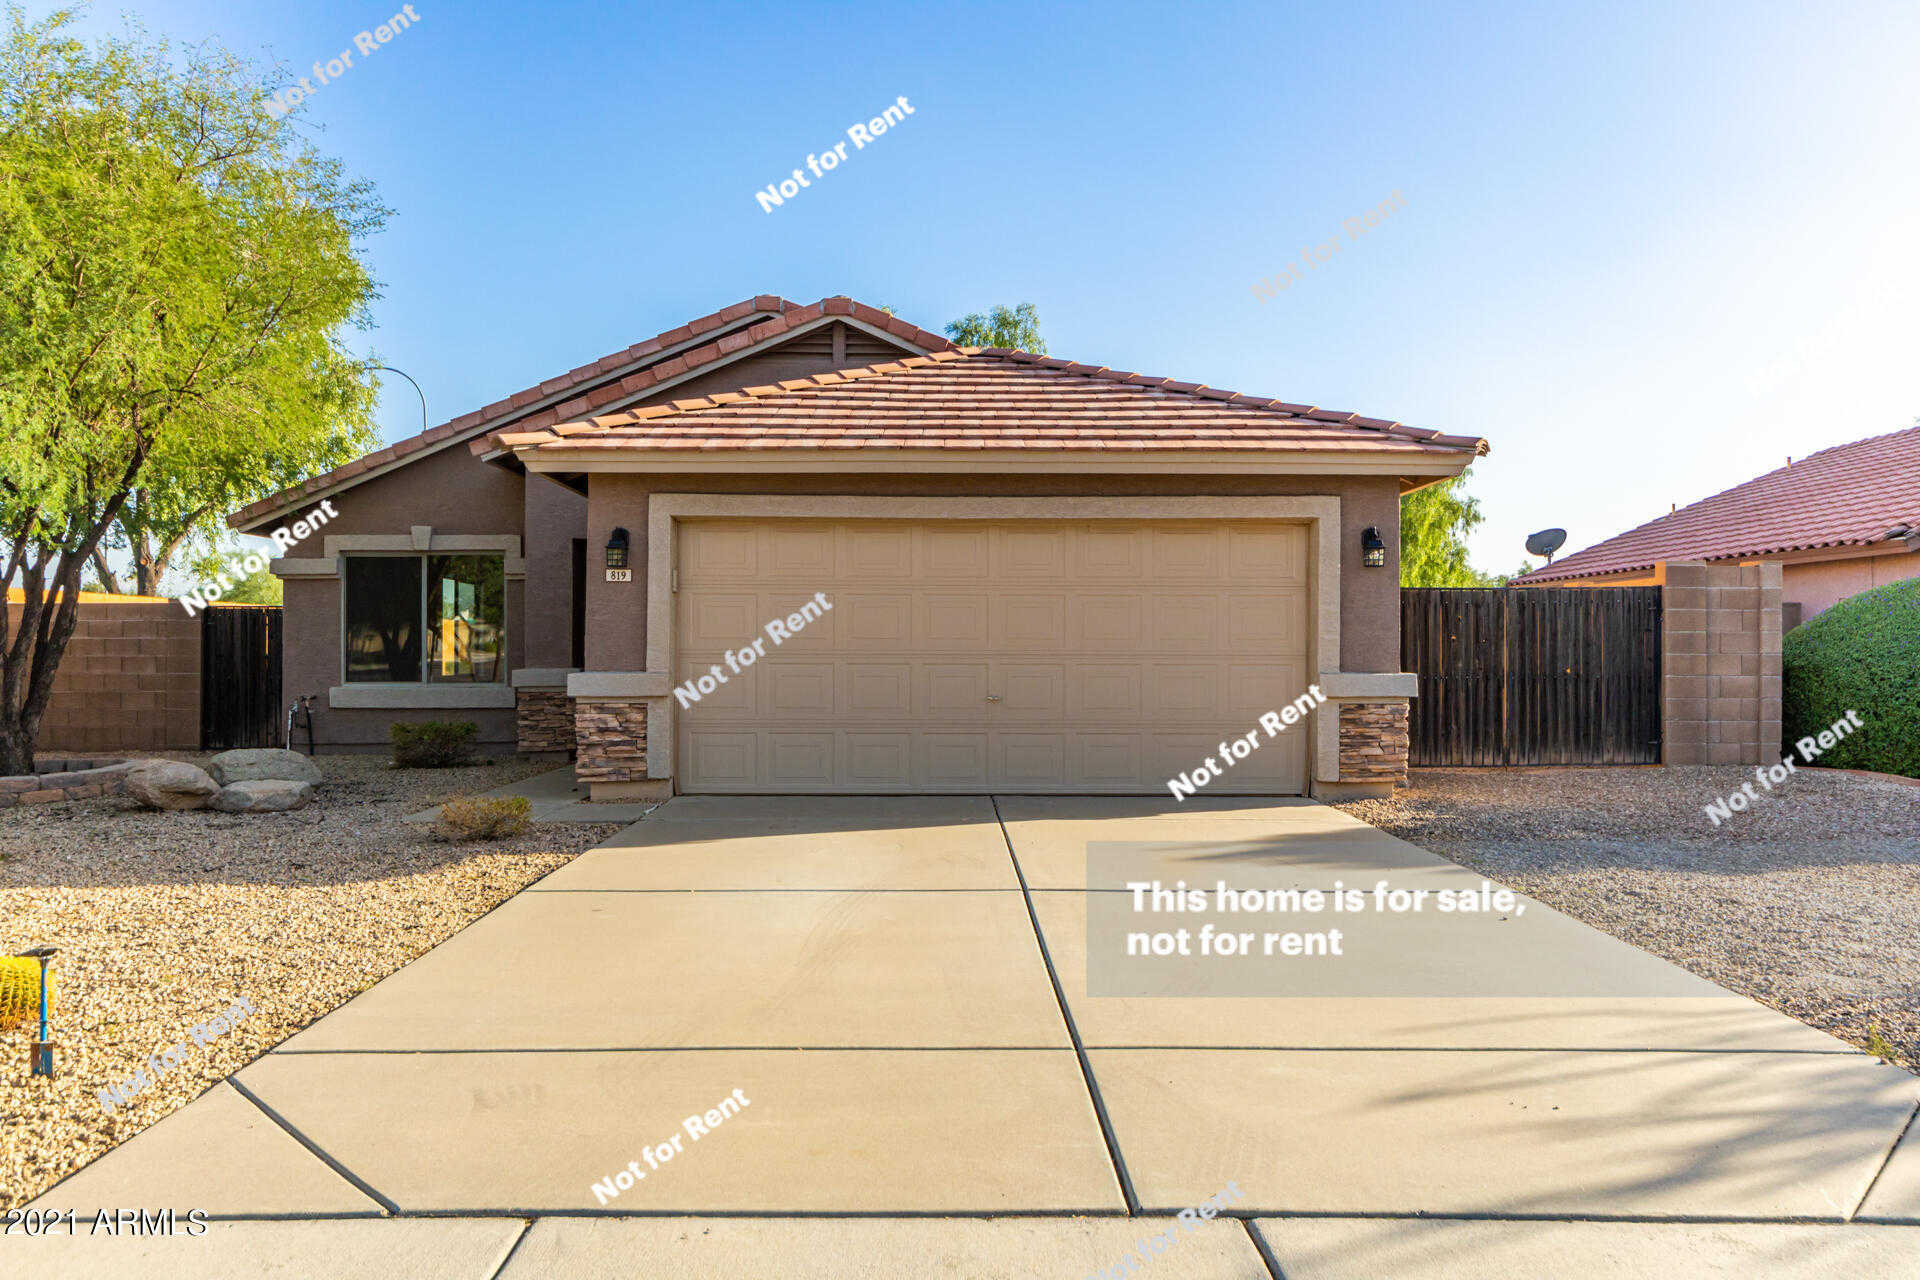 $385,000 - 3Br/2Ba - Home for Sale in Sunrise Shadows, Apache Junction